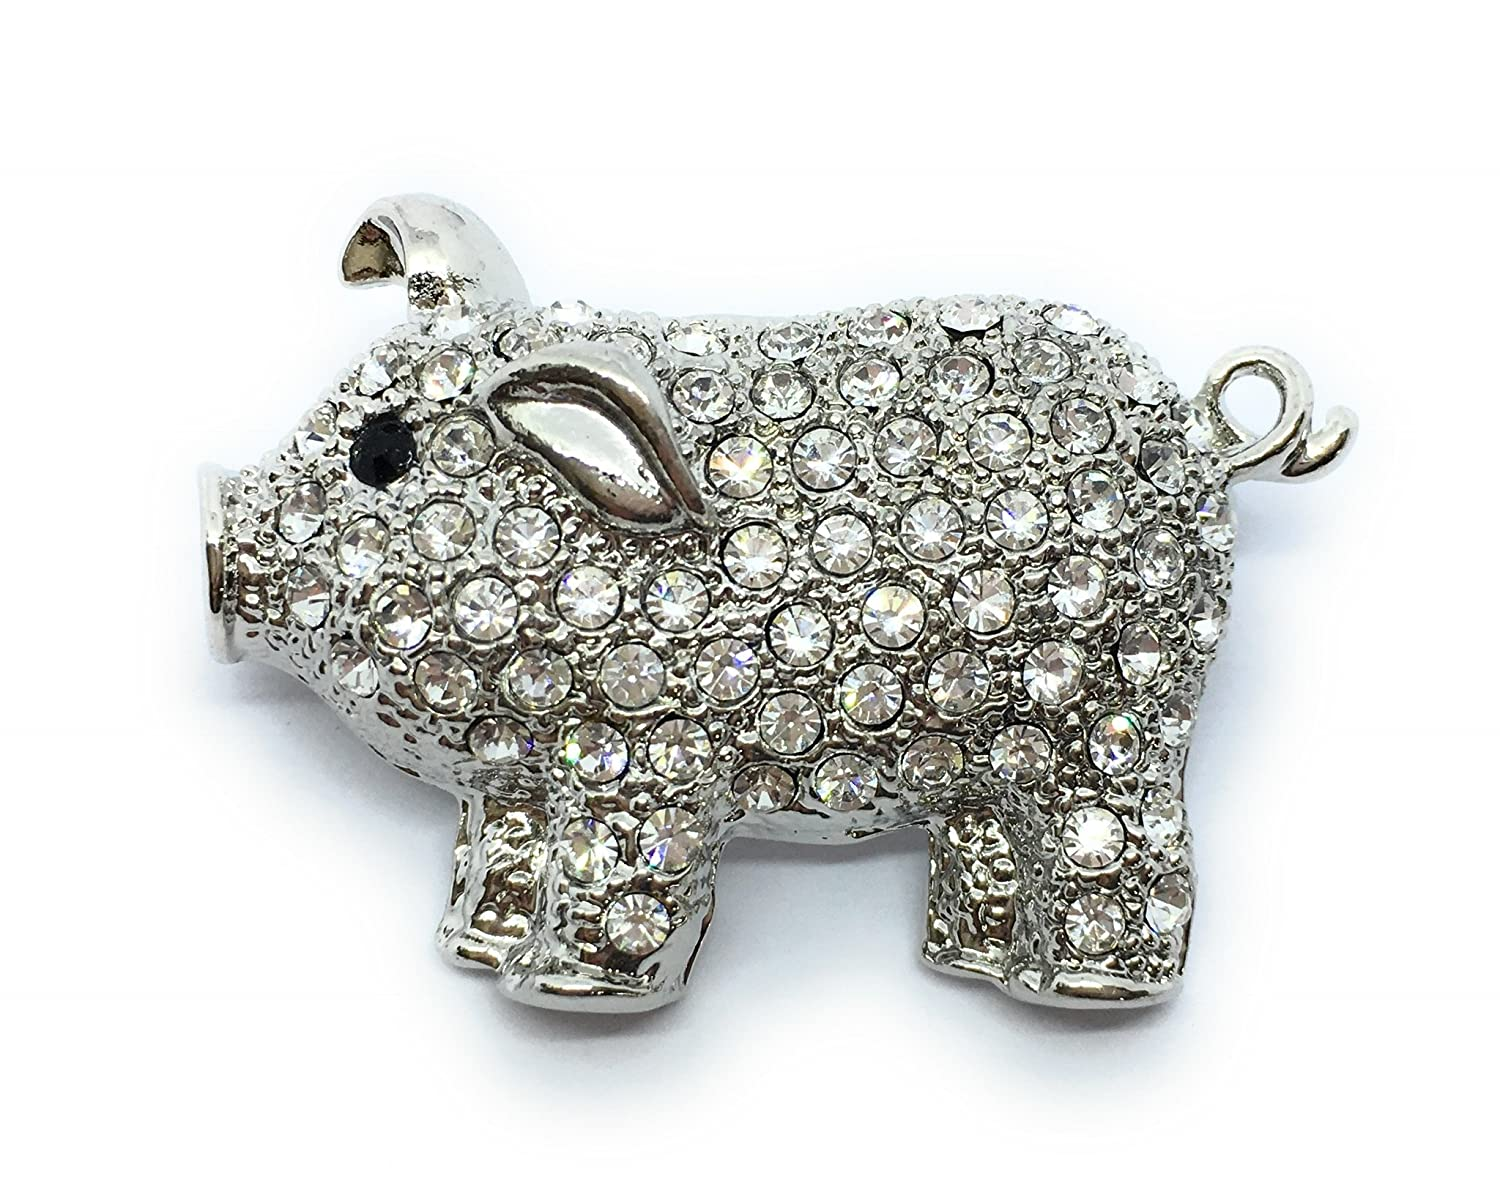 Lucky Pig Brooch, Cute Piggy Brooch - Encrusted in Crystals, 3.5cm x 2.5cm - Includes Gift Box Other BROOCHLEAVES310714